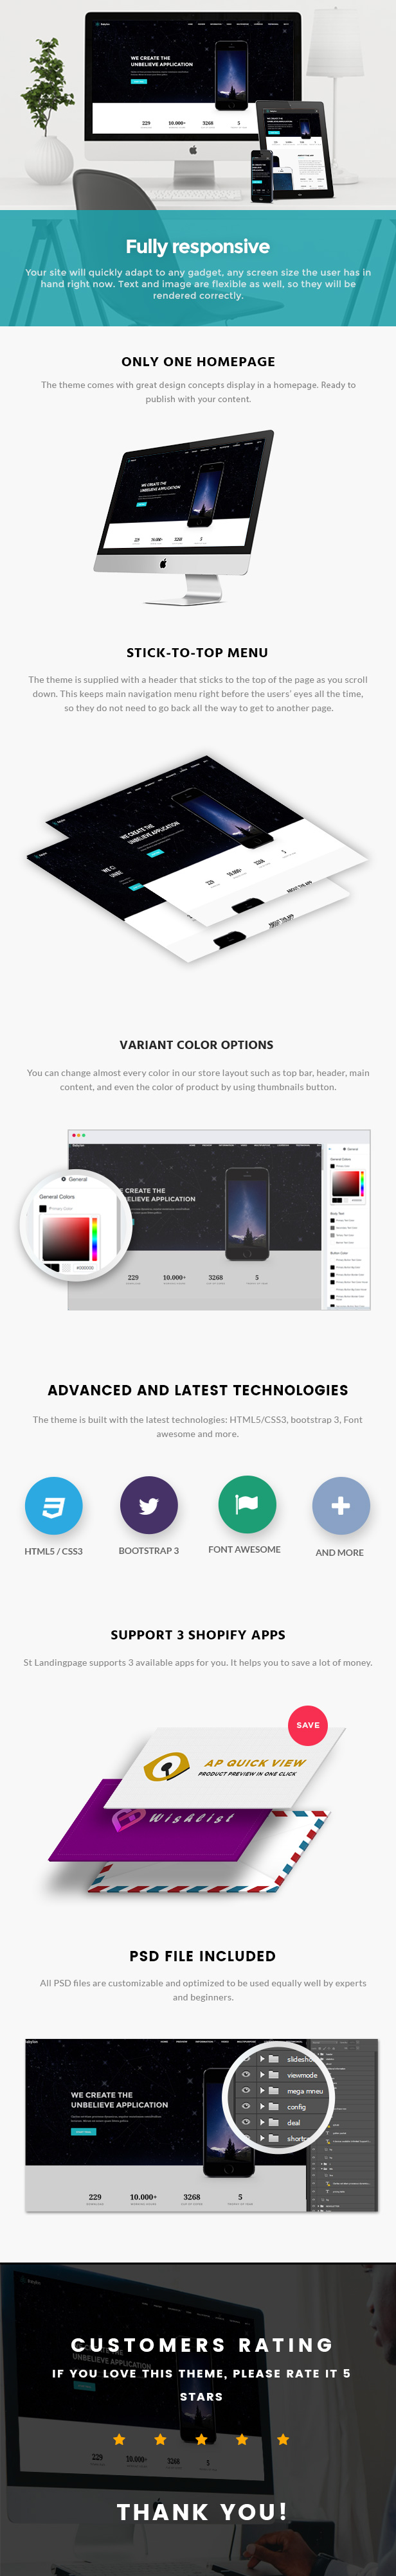 Ap Landing Mobile Shopify Theme